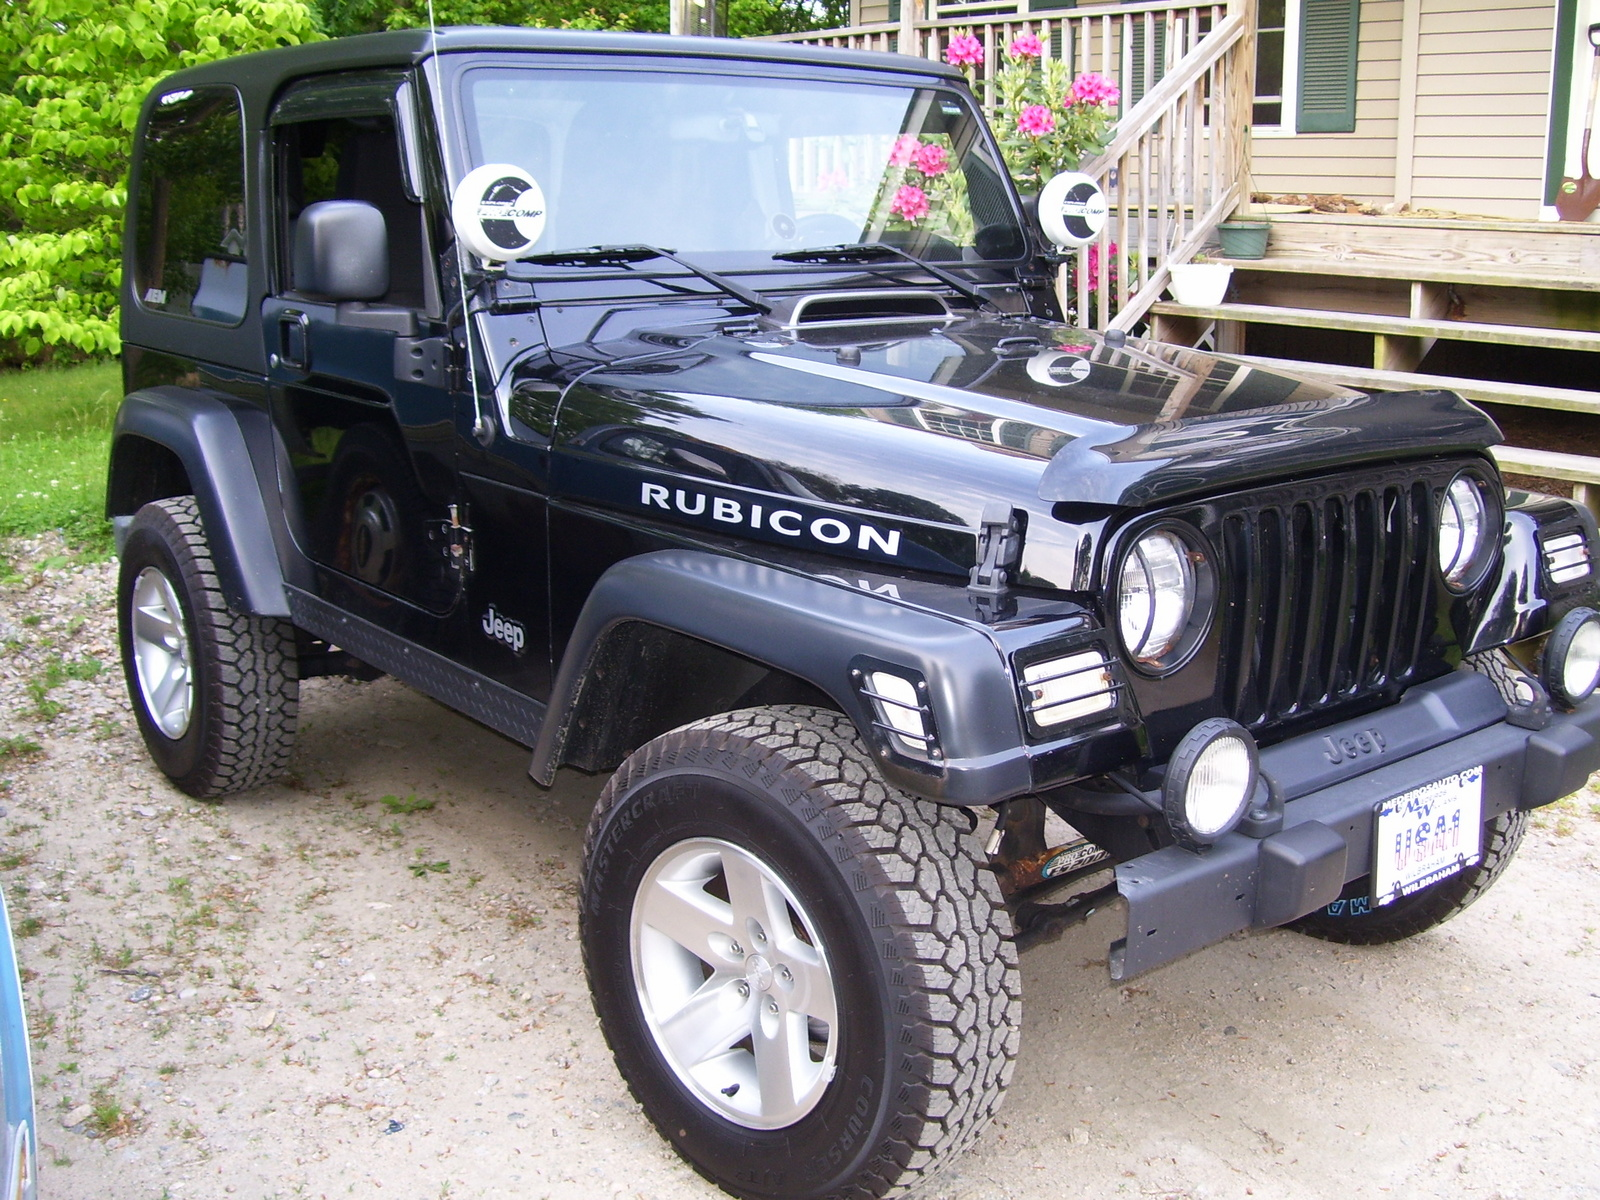 Jeep Rubicon 2005 photo - 1